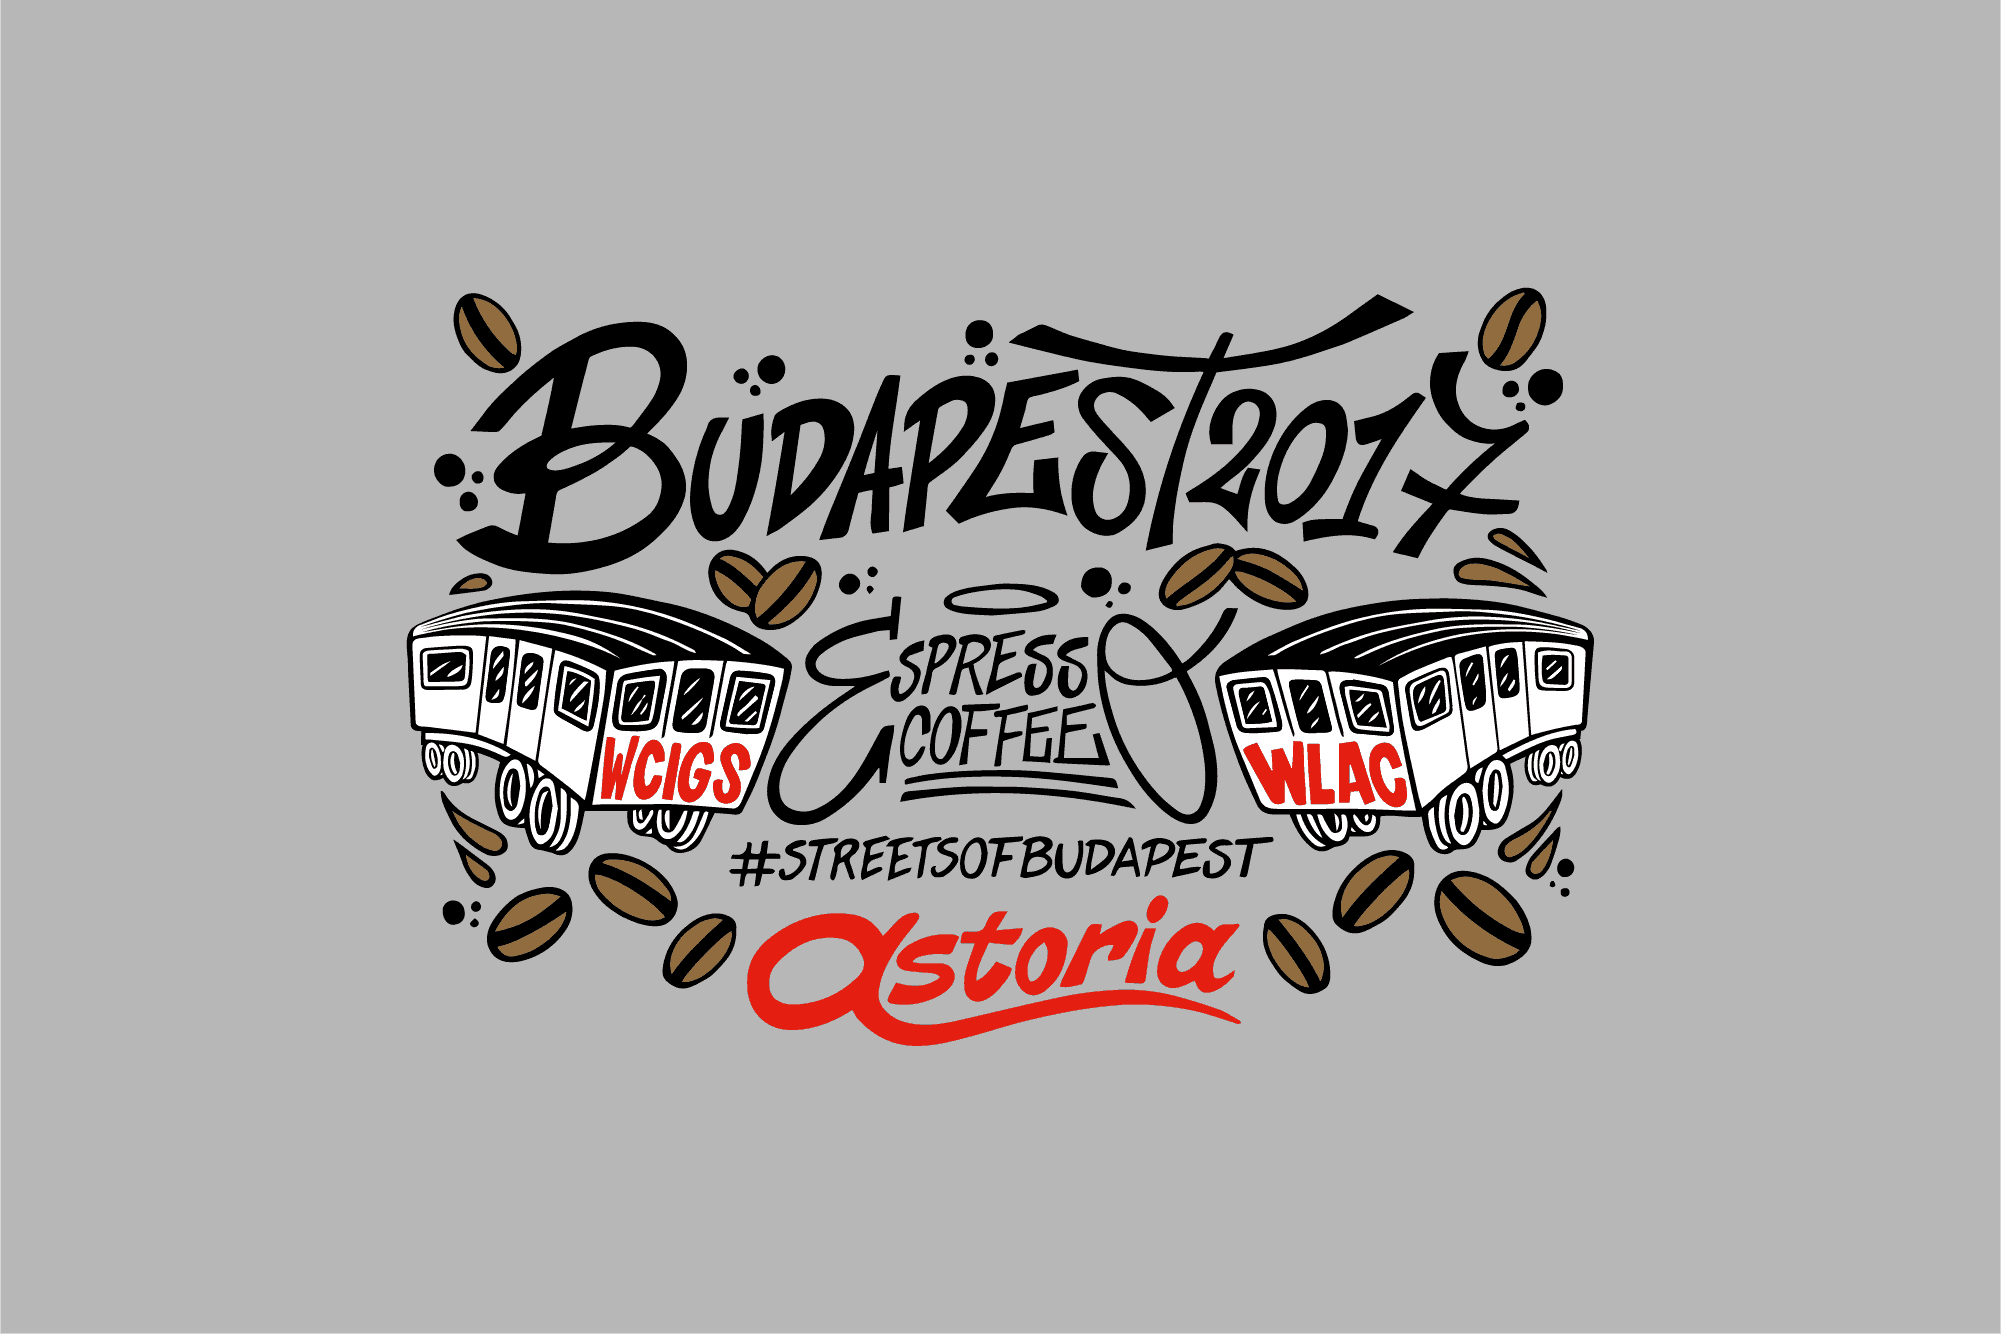 Sarah Peserico Banner home Logo Streets of Budapest Banner home sito - WORLD OF COFFEE 2017: PLUS4CHAMPIONS IN BUDAPEST FOR THE WORLD CHAMPIONSHIPS!